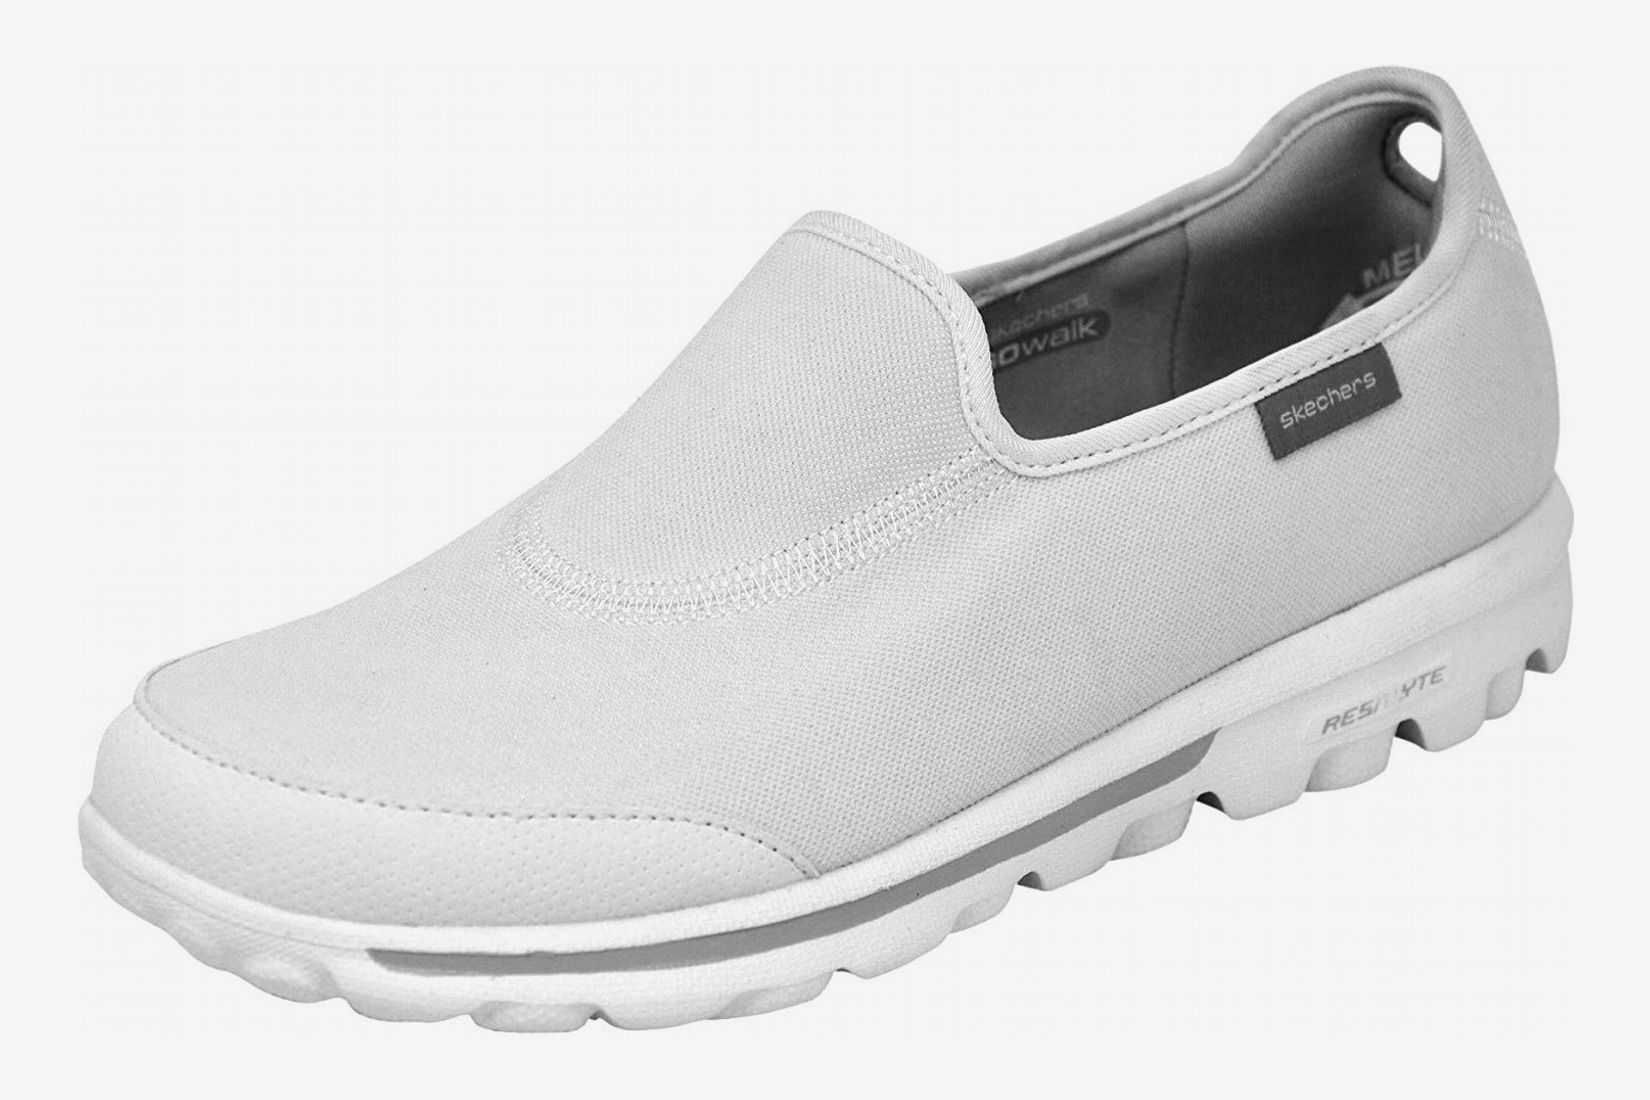 8df7aa950ac Skechers Performance Women's Go Walk Impress Memory Foam Slip-On Walking  Shoe